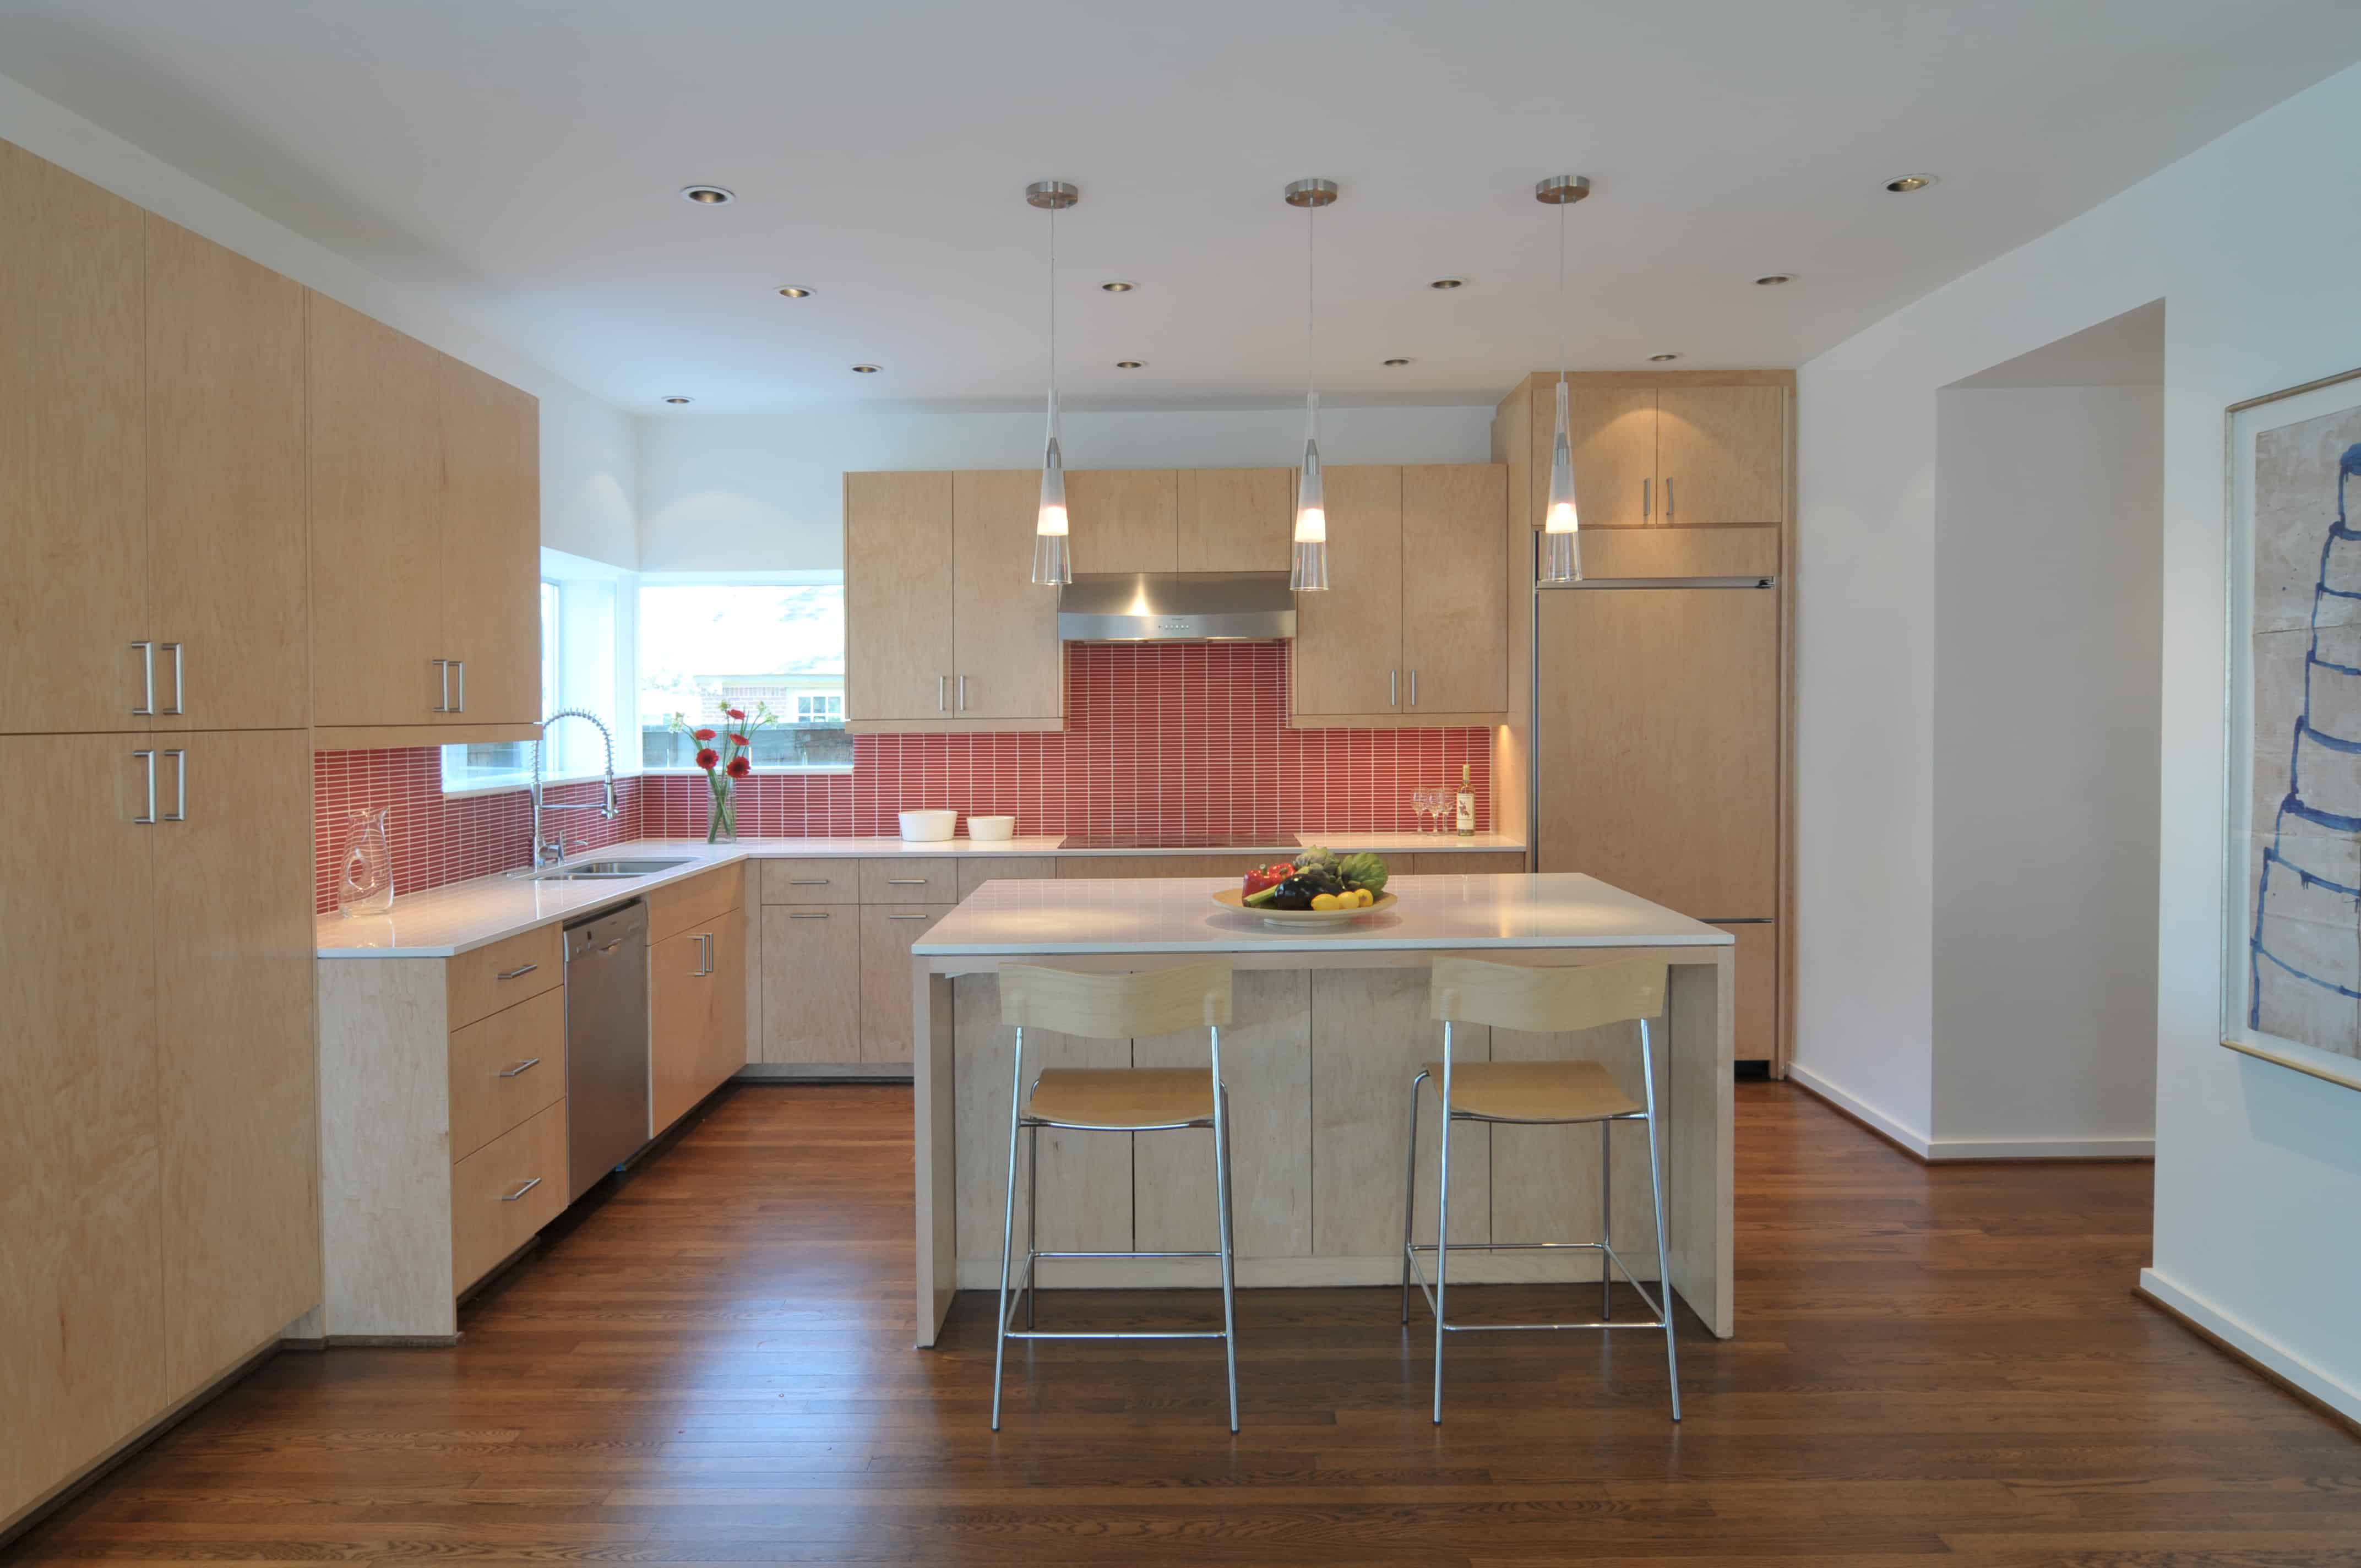 Southmore terrace sustainable houston modern home light wood kitchen with red tile